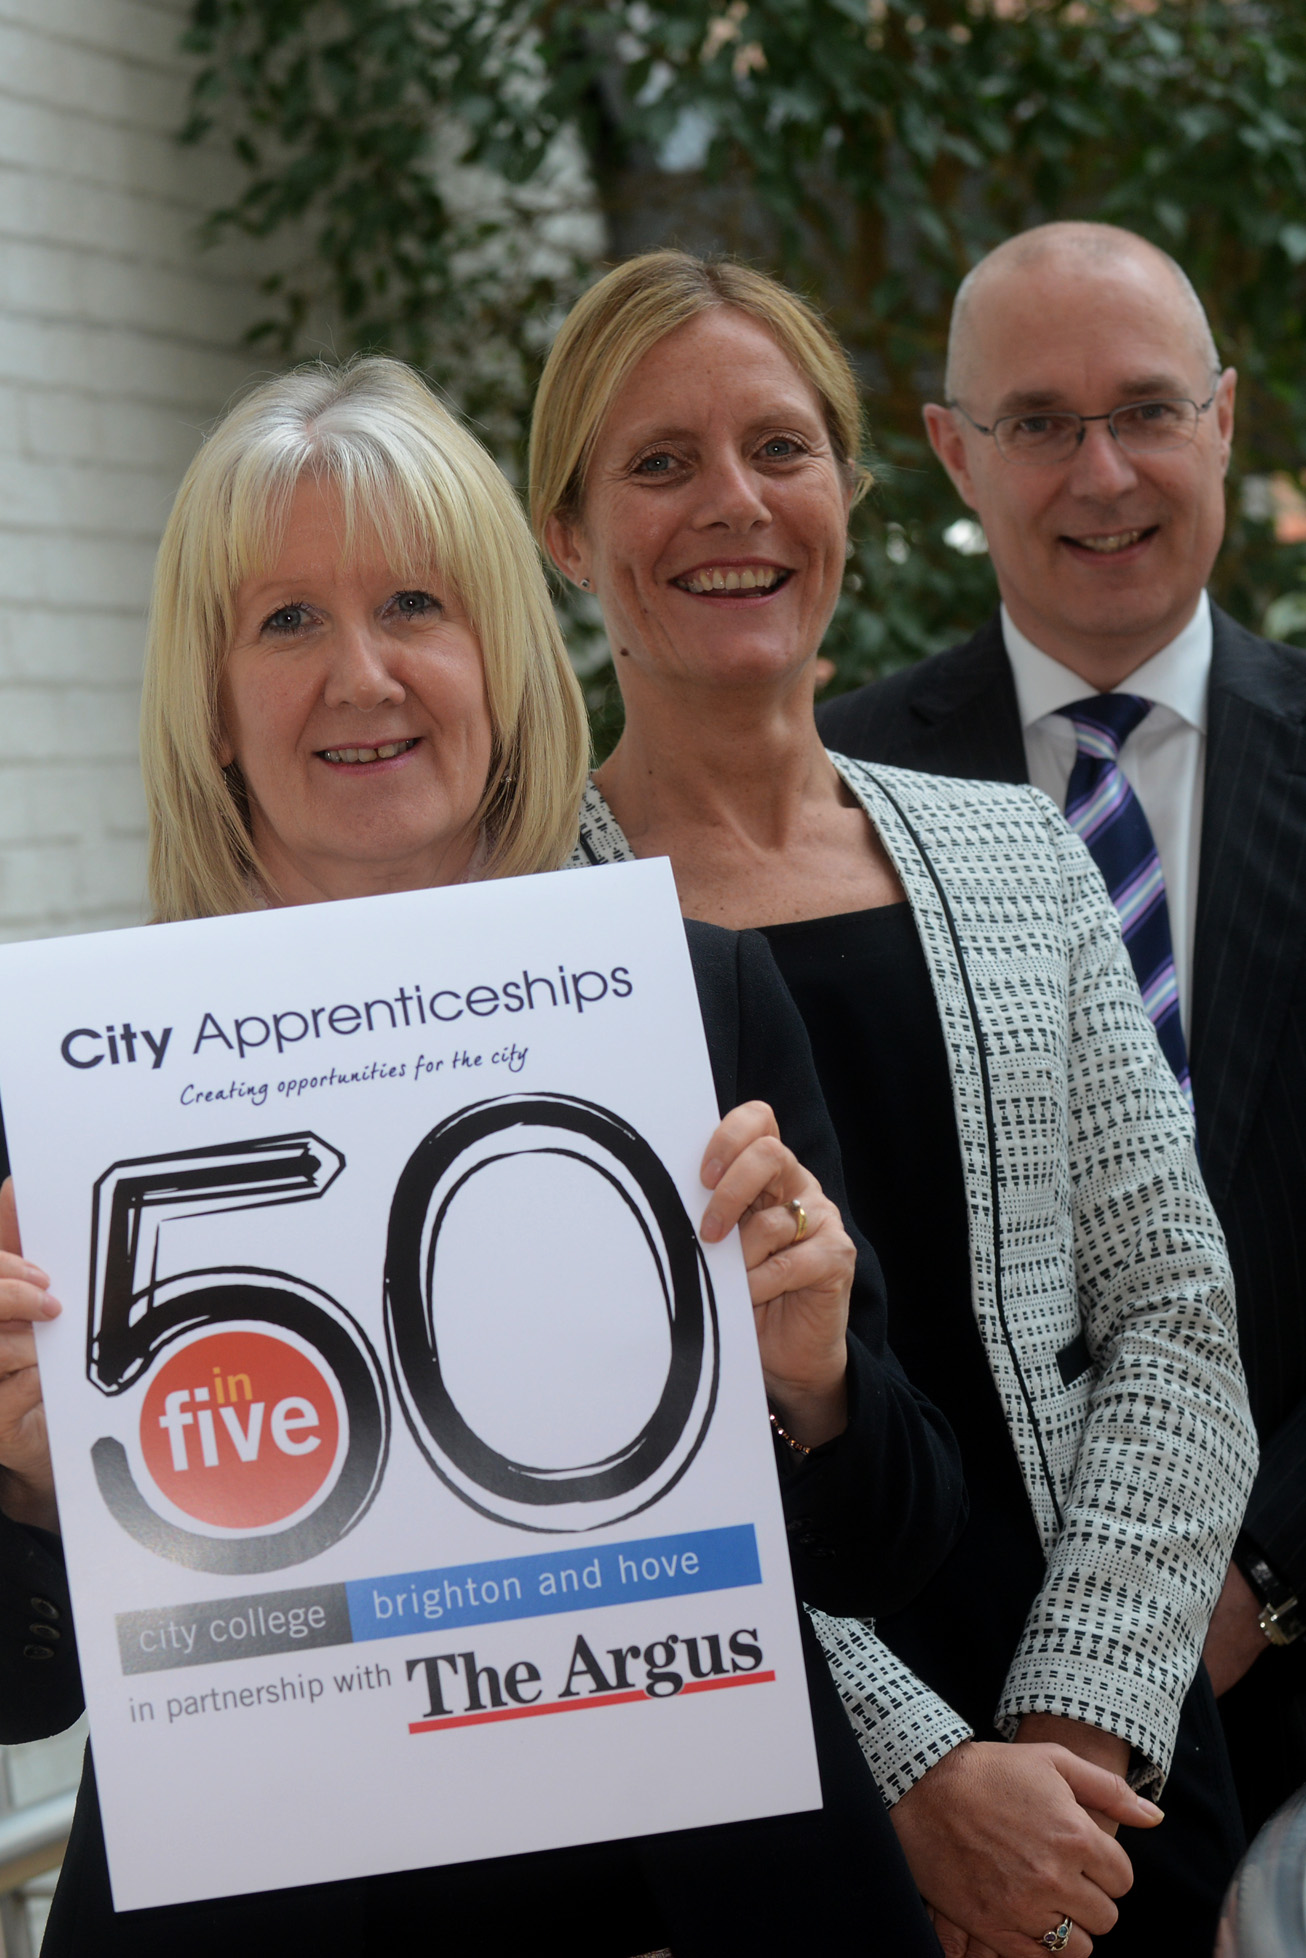 You're hired - The Argus campaign smashes apprenticeships target with 67 youngsters taken on by firms